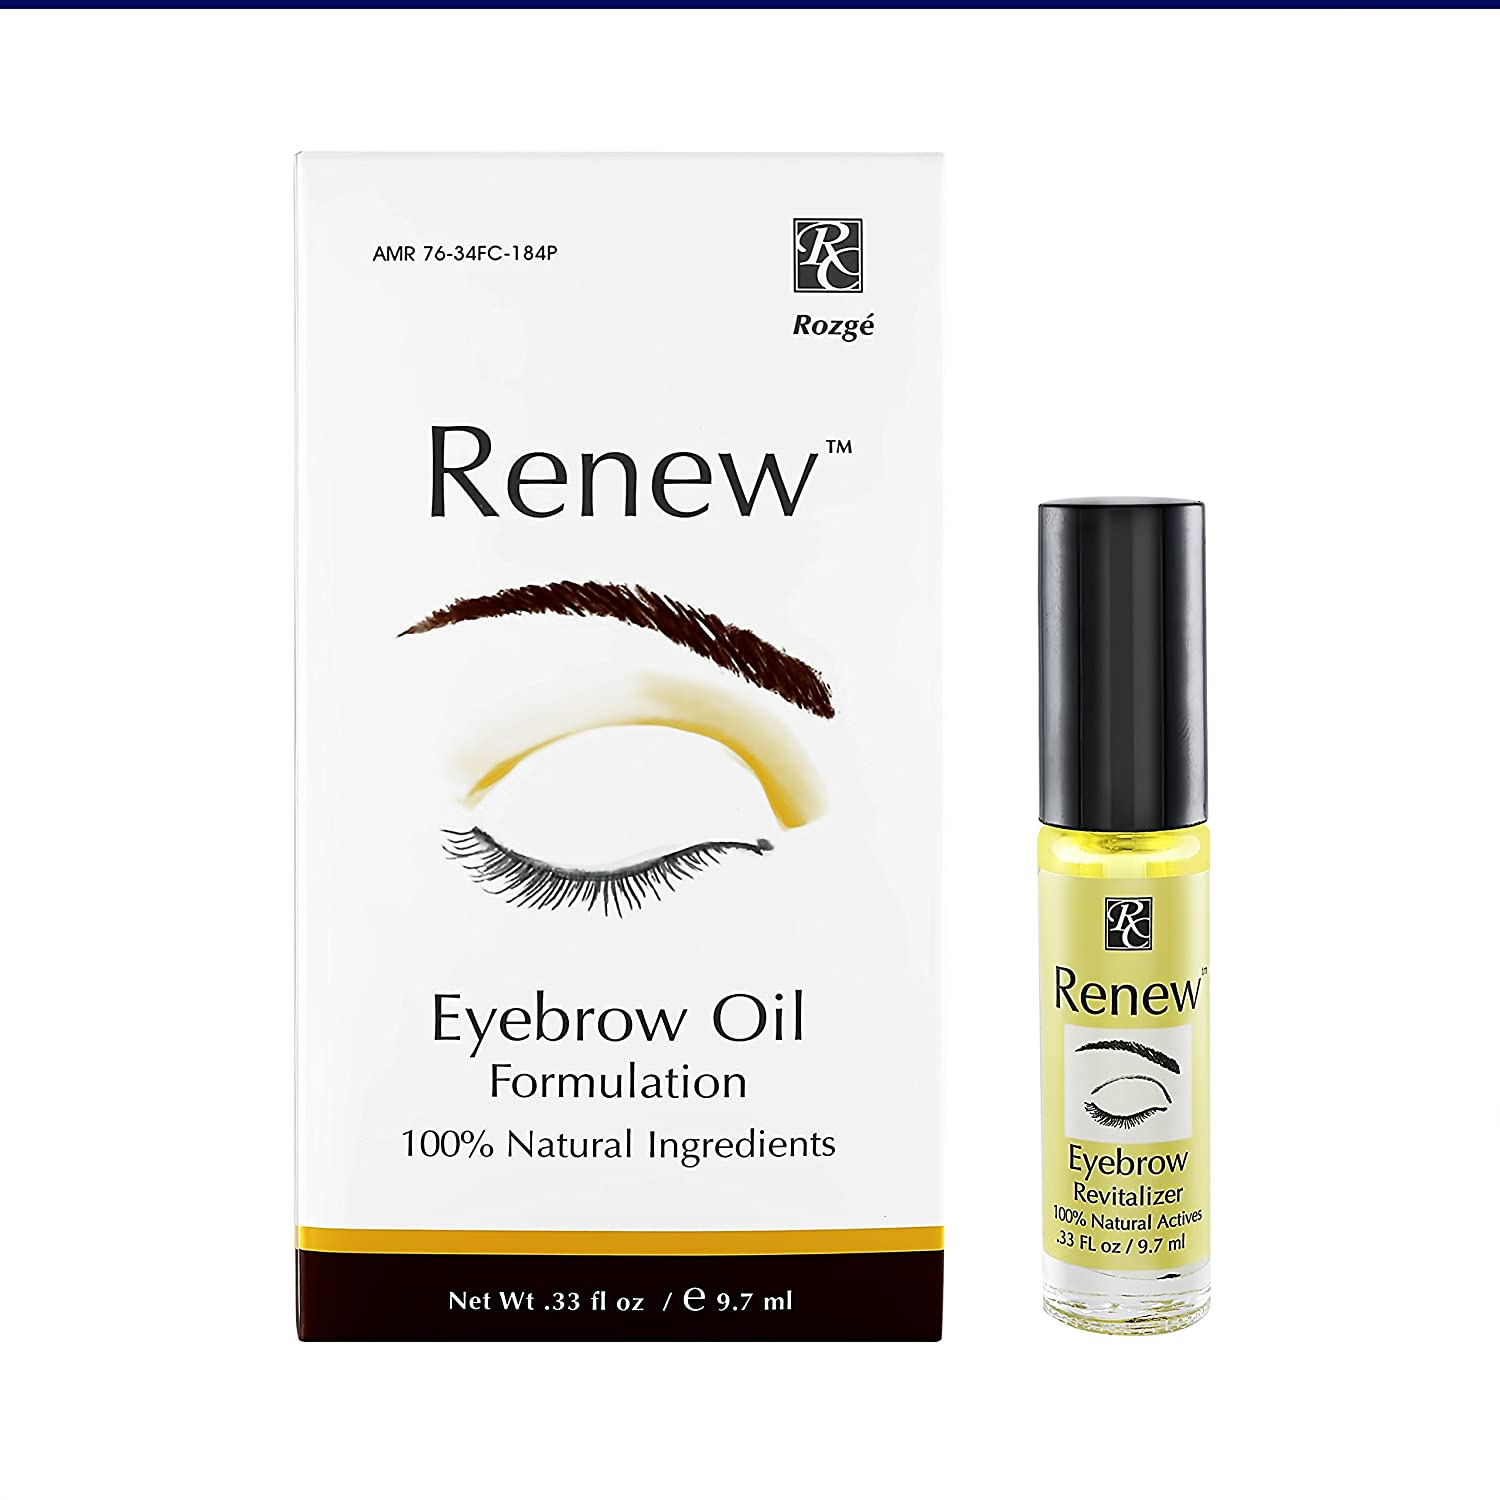 Amazon Renew Eyebrow Revitalizer Eyebrow Growth Oil All